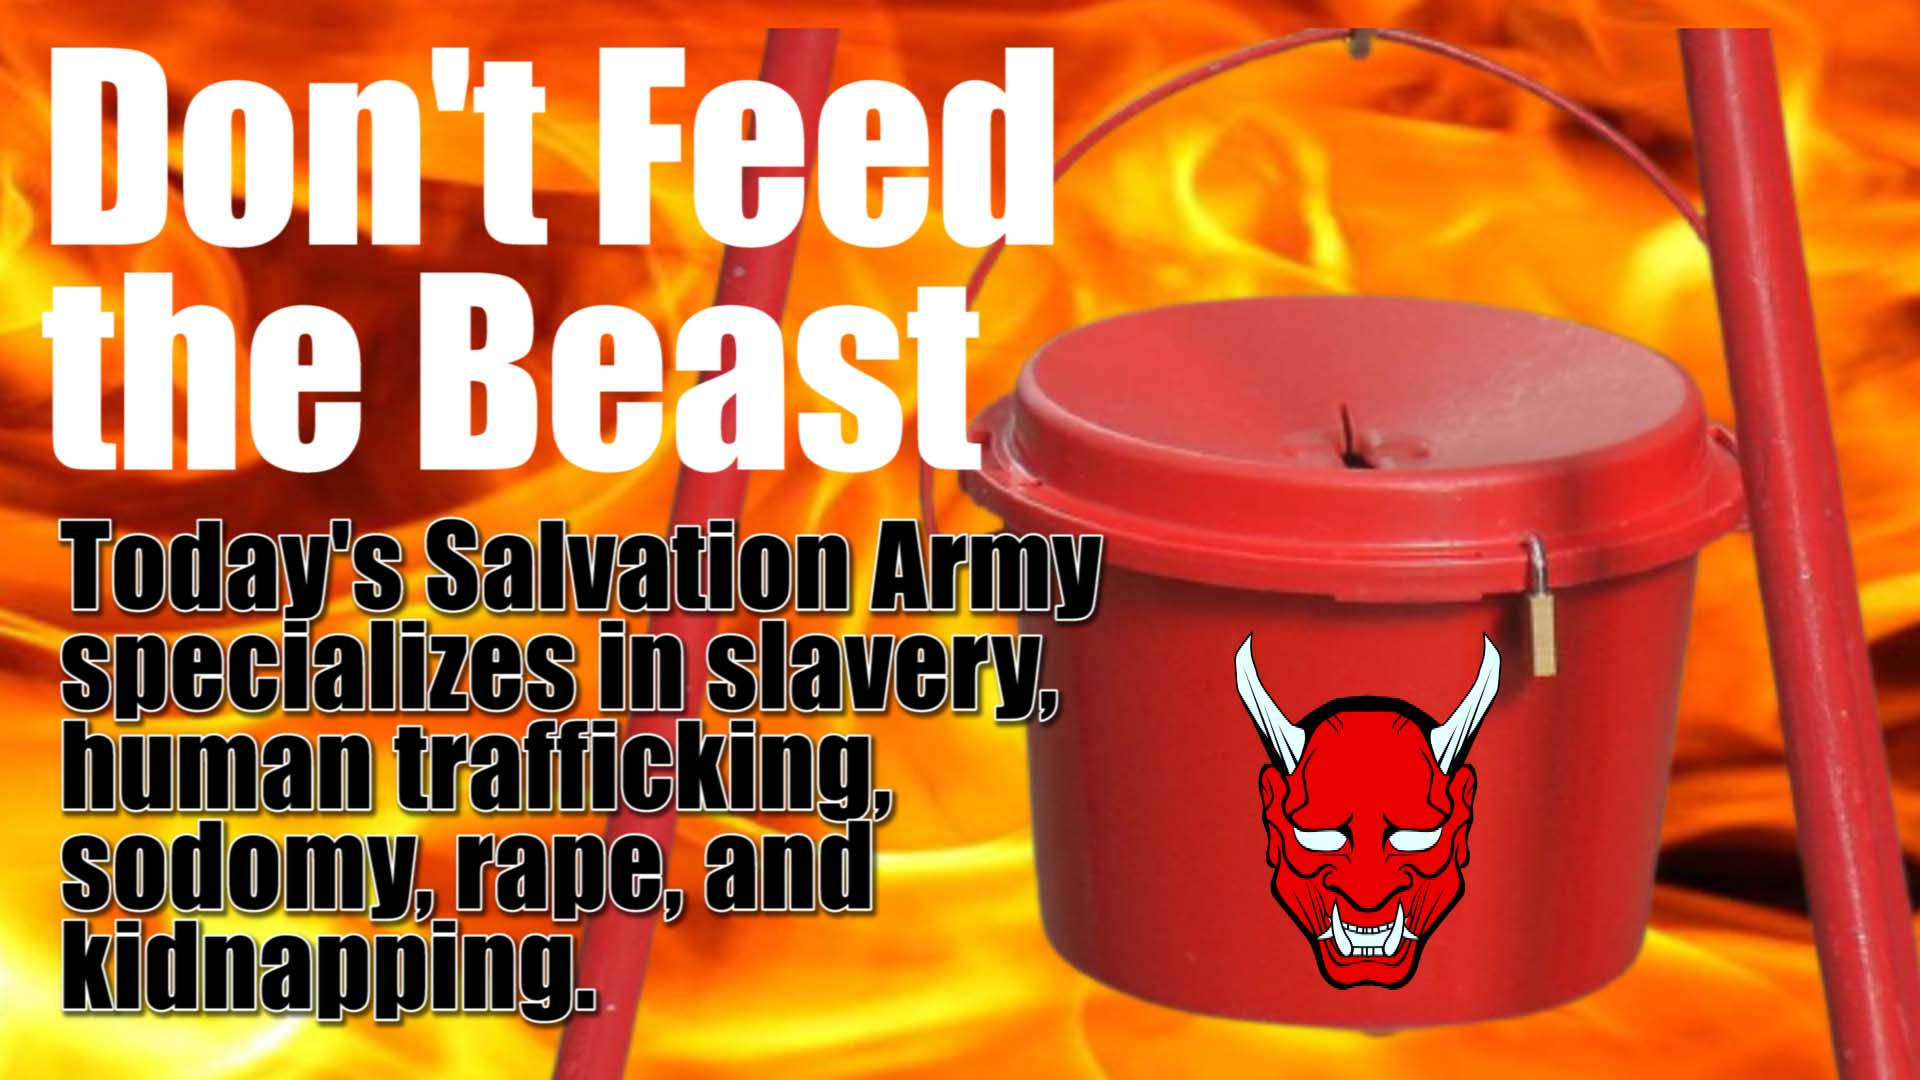 Salvation Army - Don't Feed the Beast